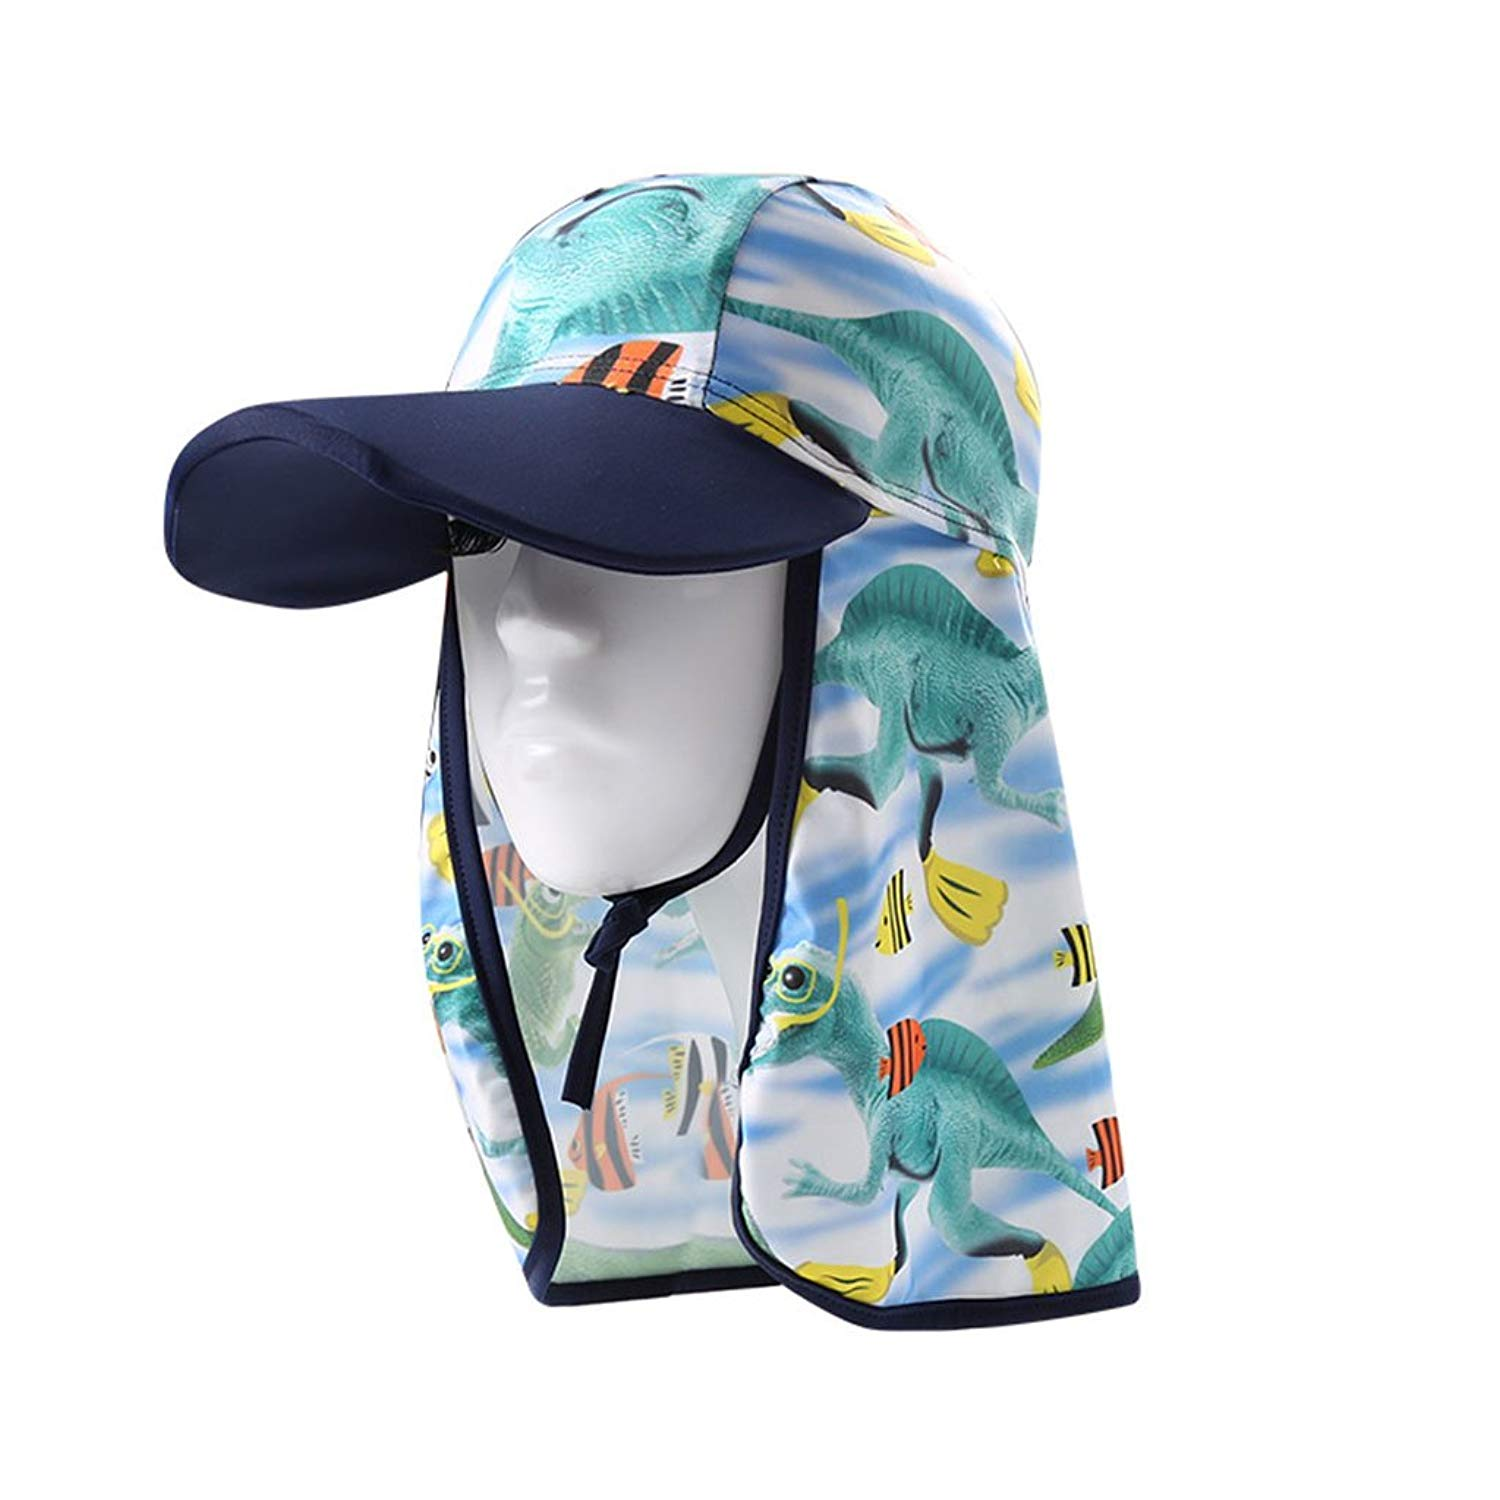 c5202493697 Get Quotations · Gogokids Boys Girls Sun Hat Flap Cap - Kids Sun Protection  Beach Hat Summer Visor Cap